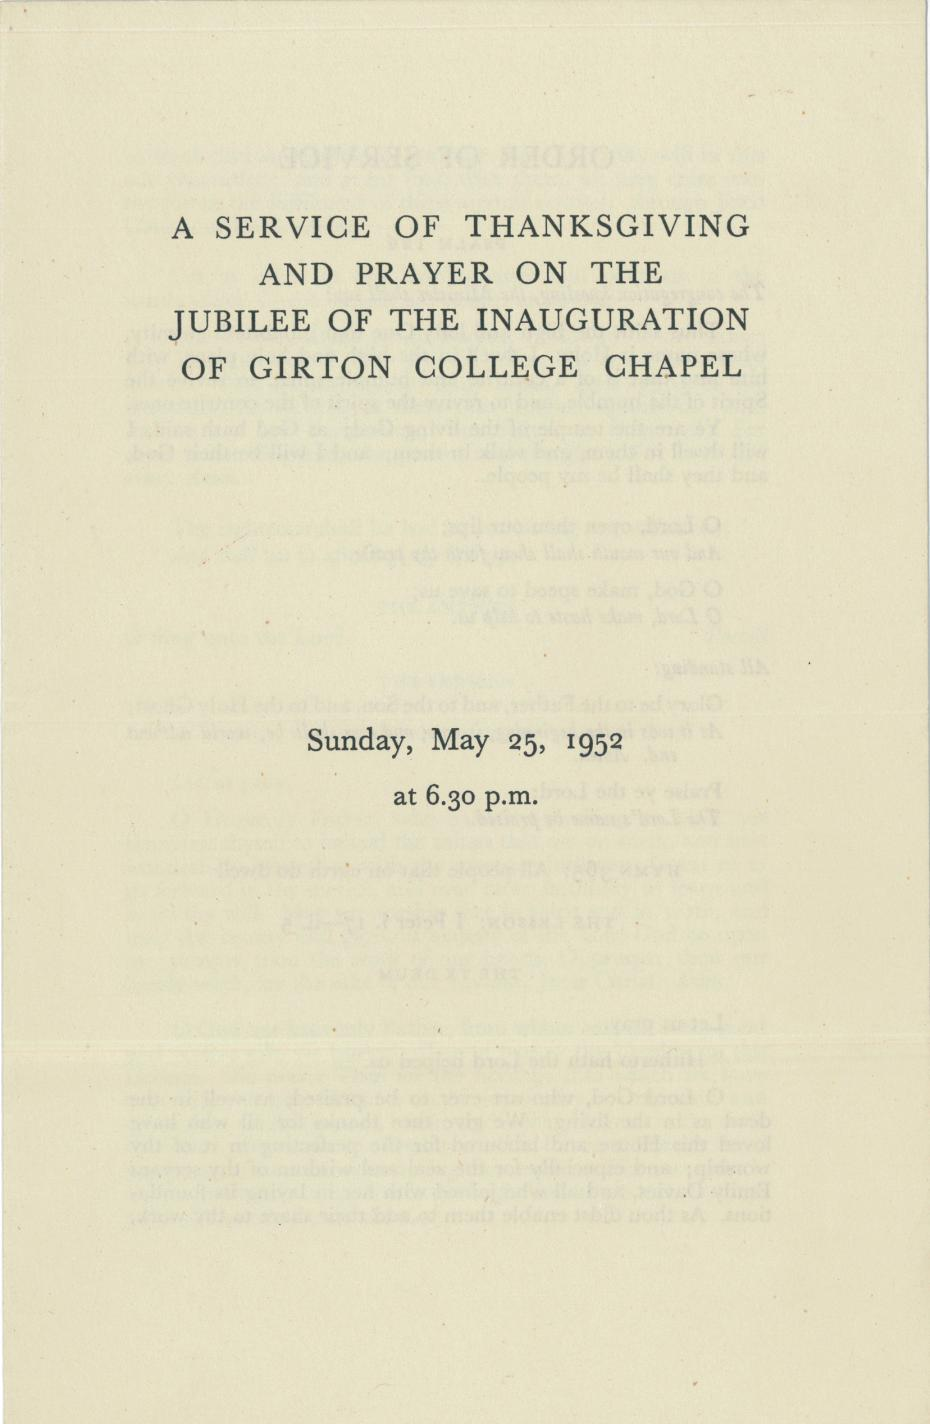 Order of service for the jubilee of the inauguration of the College Chapel, 25 May 1952 (archive reference: GCAR 6/4/3).